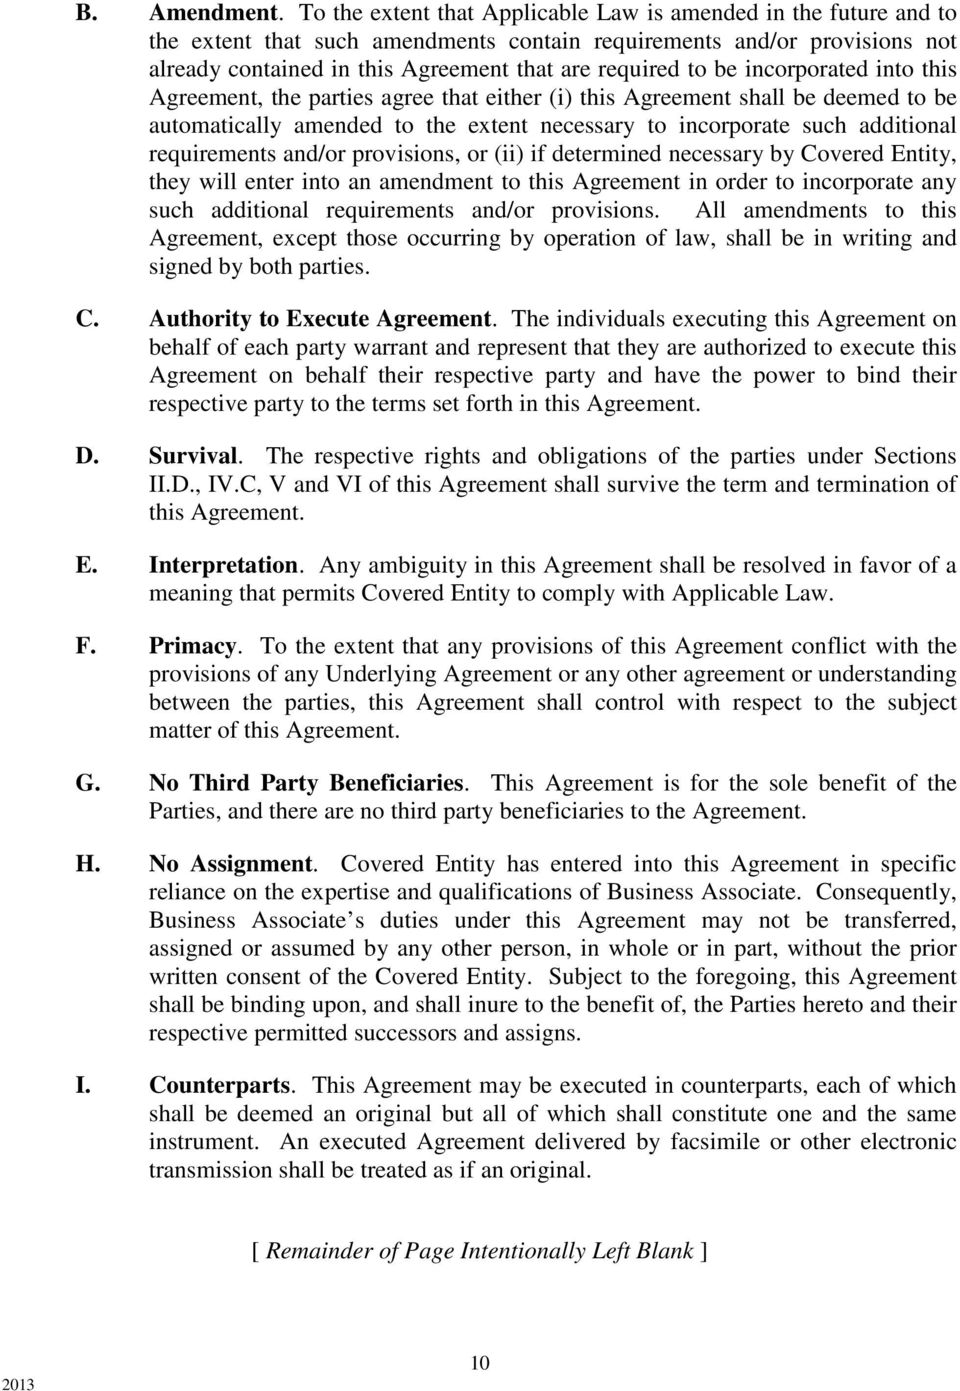 be incorporated into this Agreement, the parties agree that either (i) this Agreement shall be deemed to be automatically amended to the extent necessary to incorporate such additional requirements